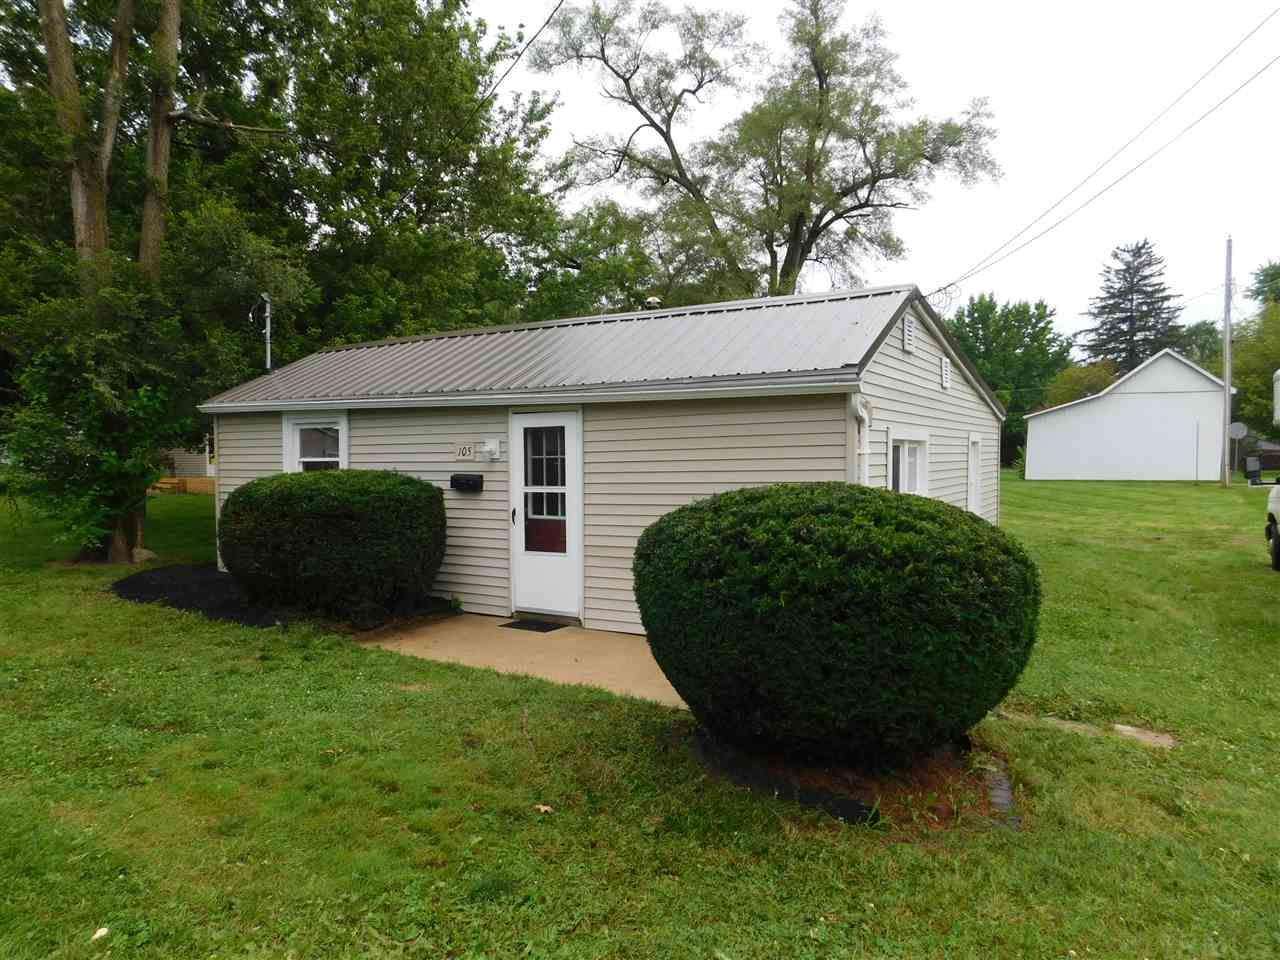 105 W Smith, South Whitley, IN 46787